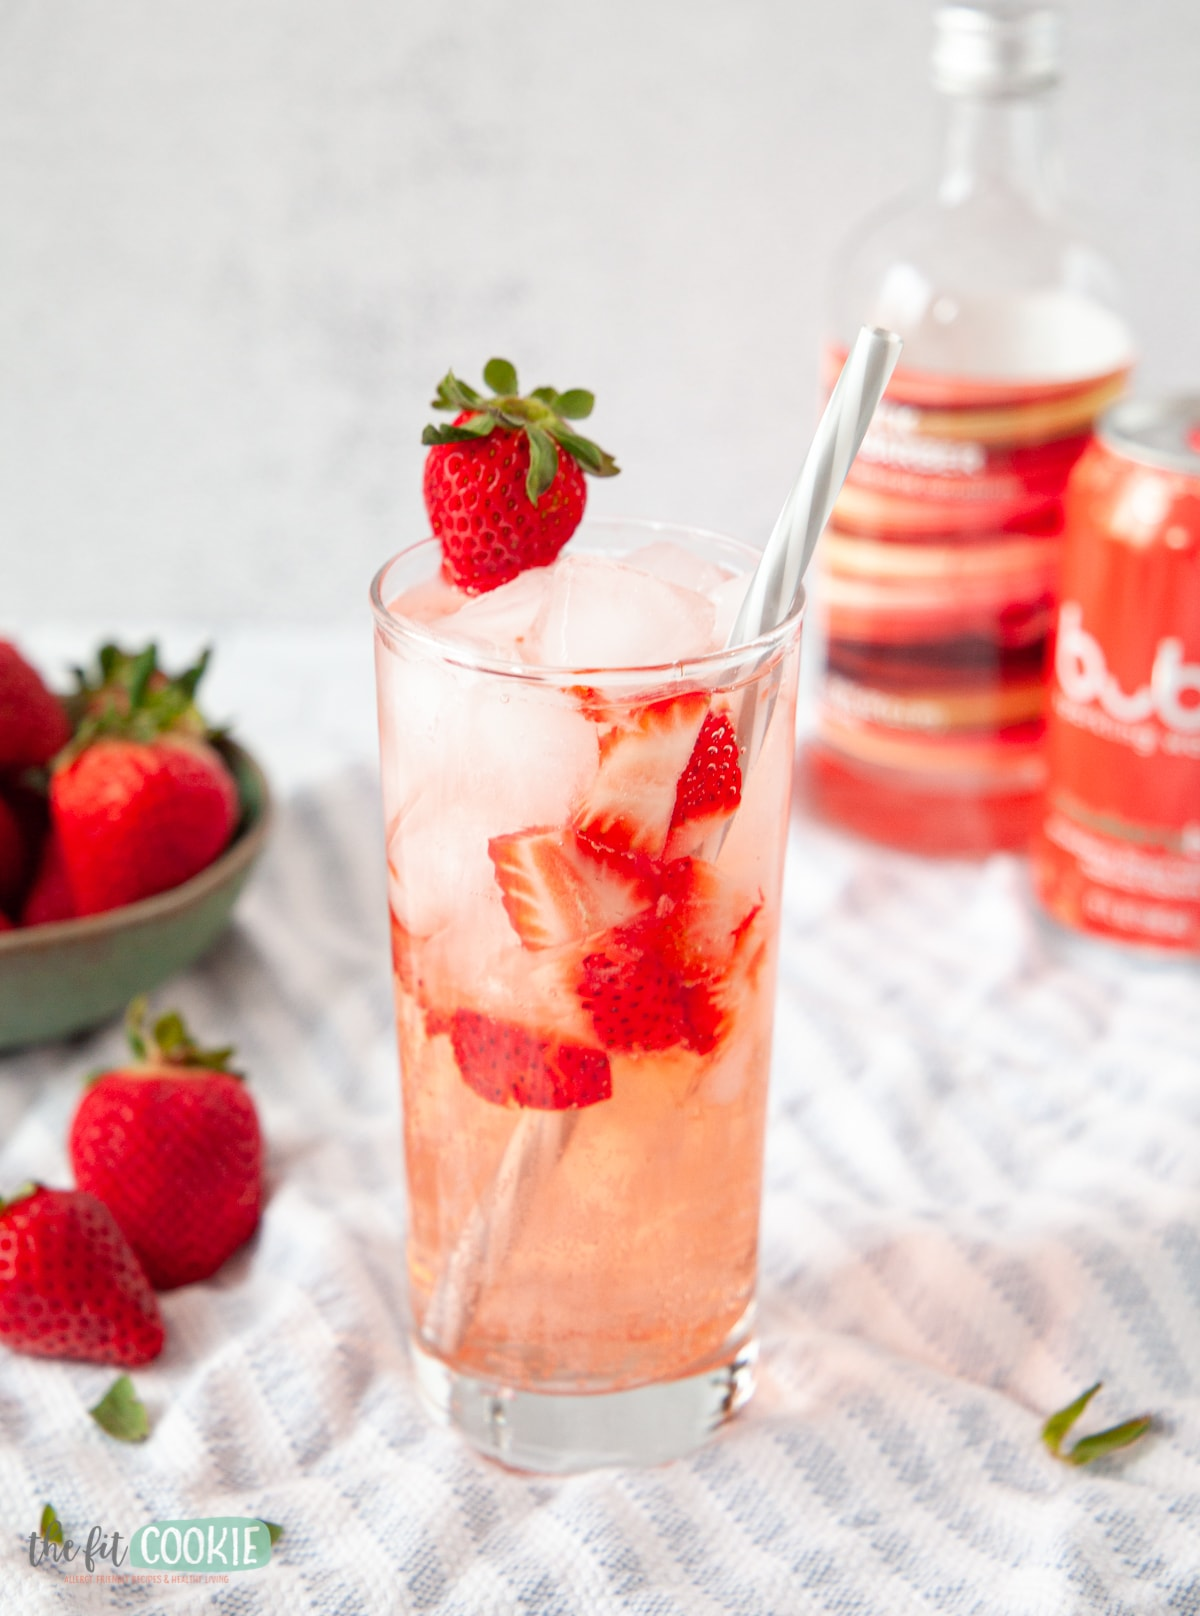 glass with strawberries, drink, and ice in it